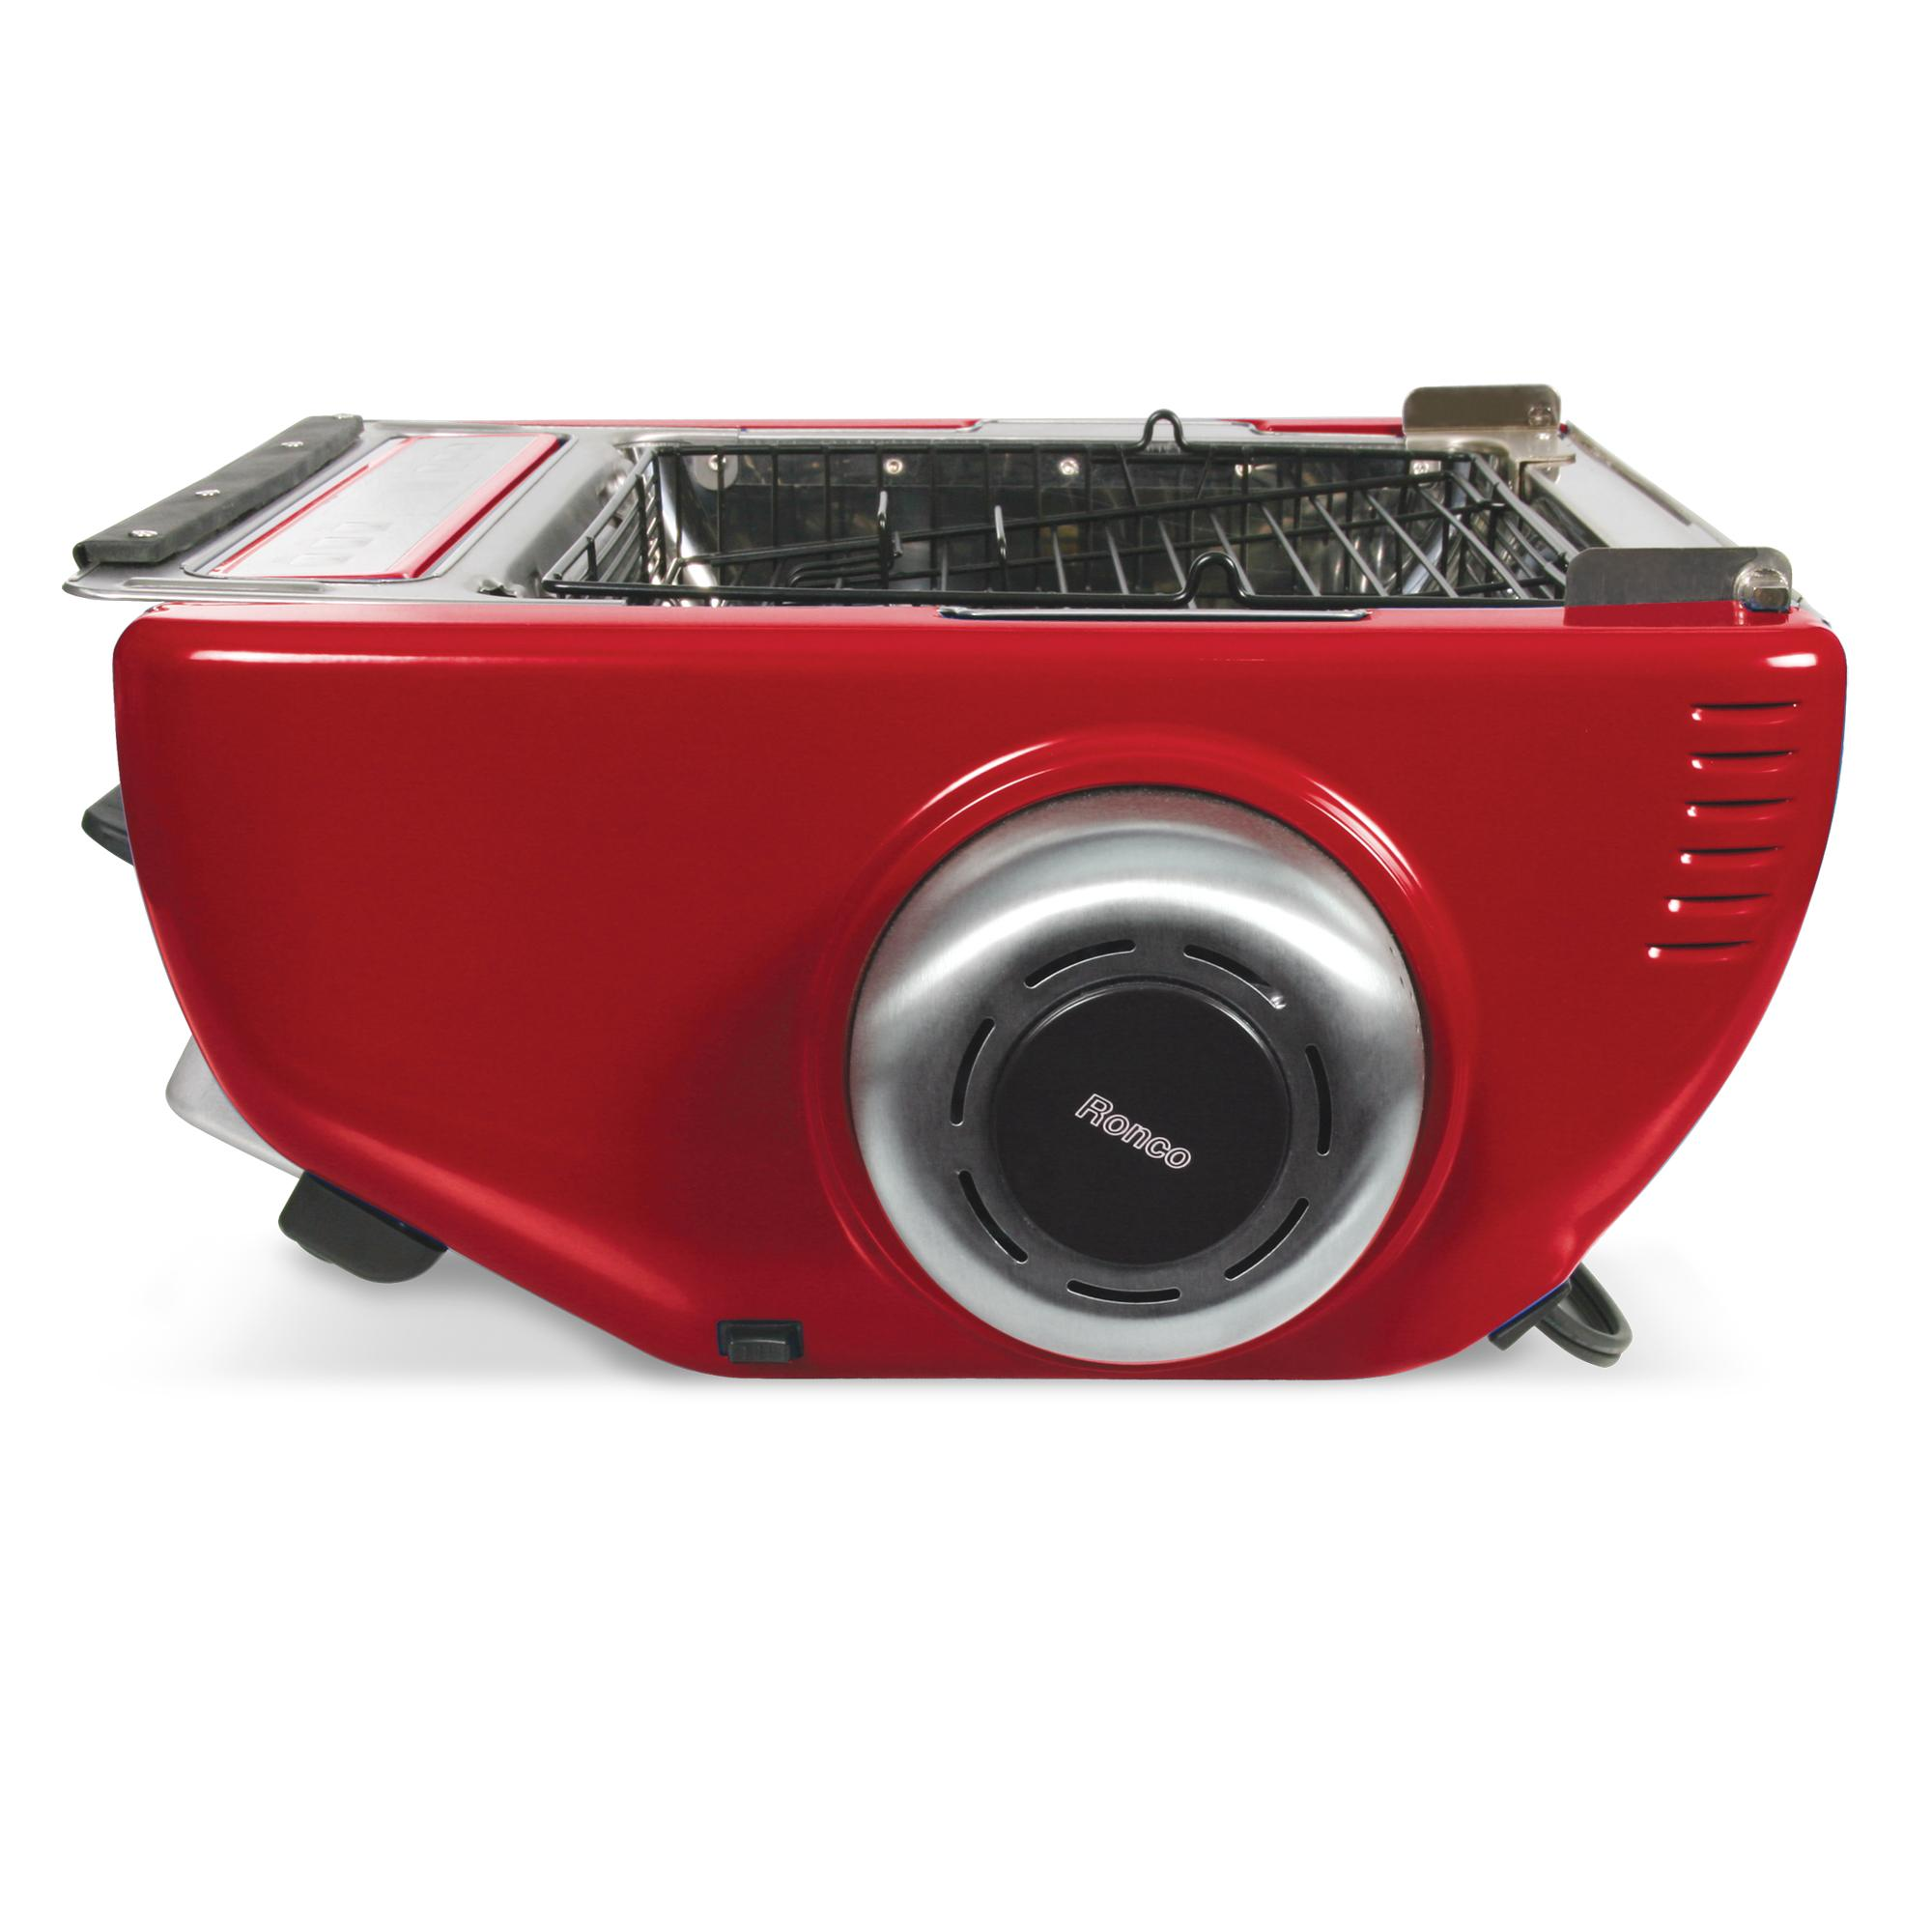 Amazon.com: Ronco Digital Showtime Rotisserie and BBQ Oven, Red